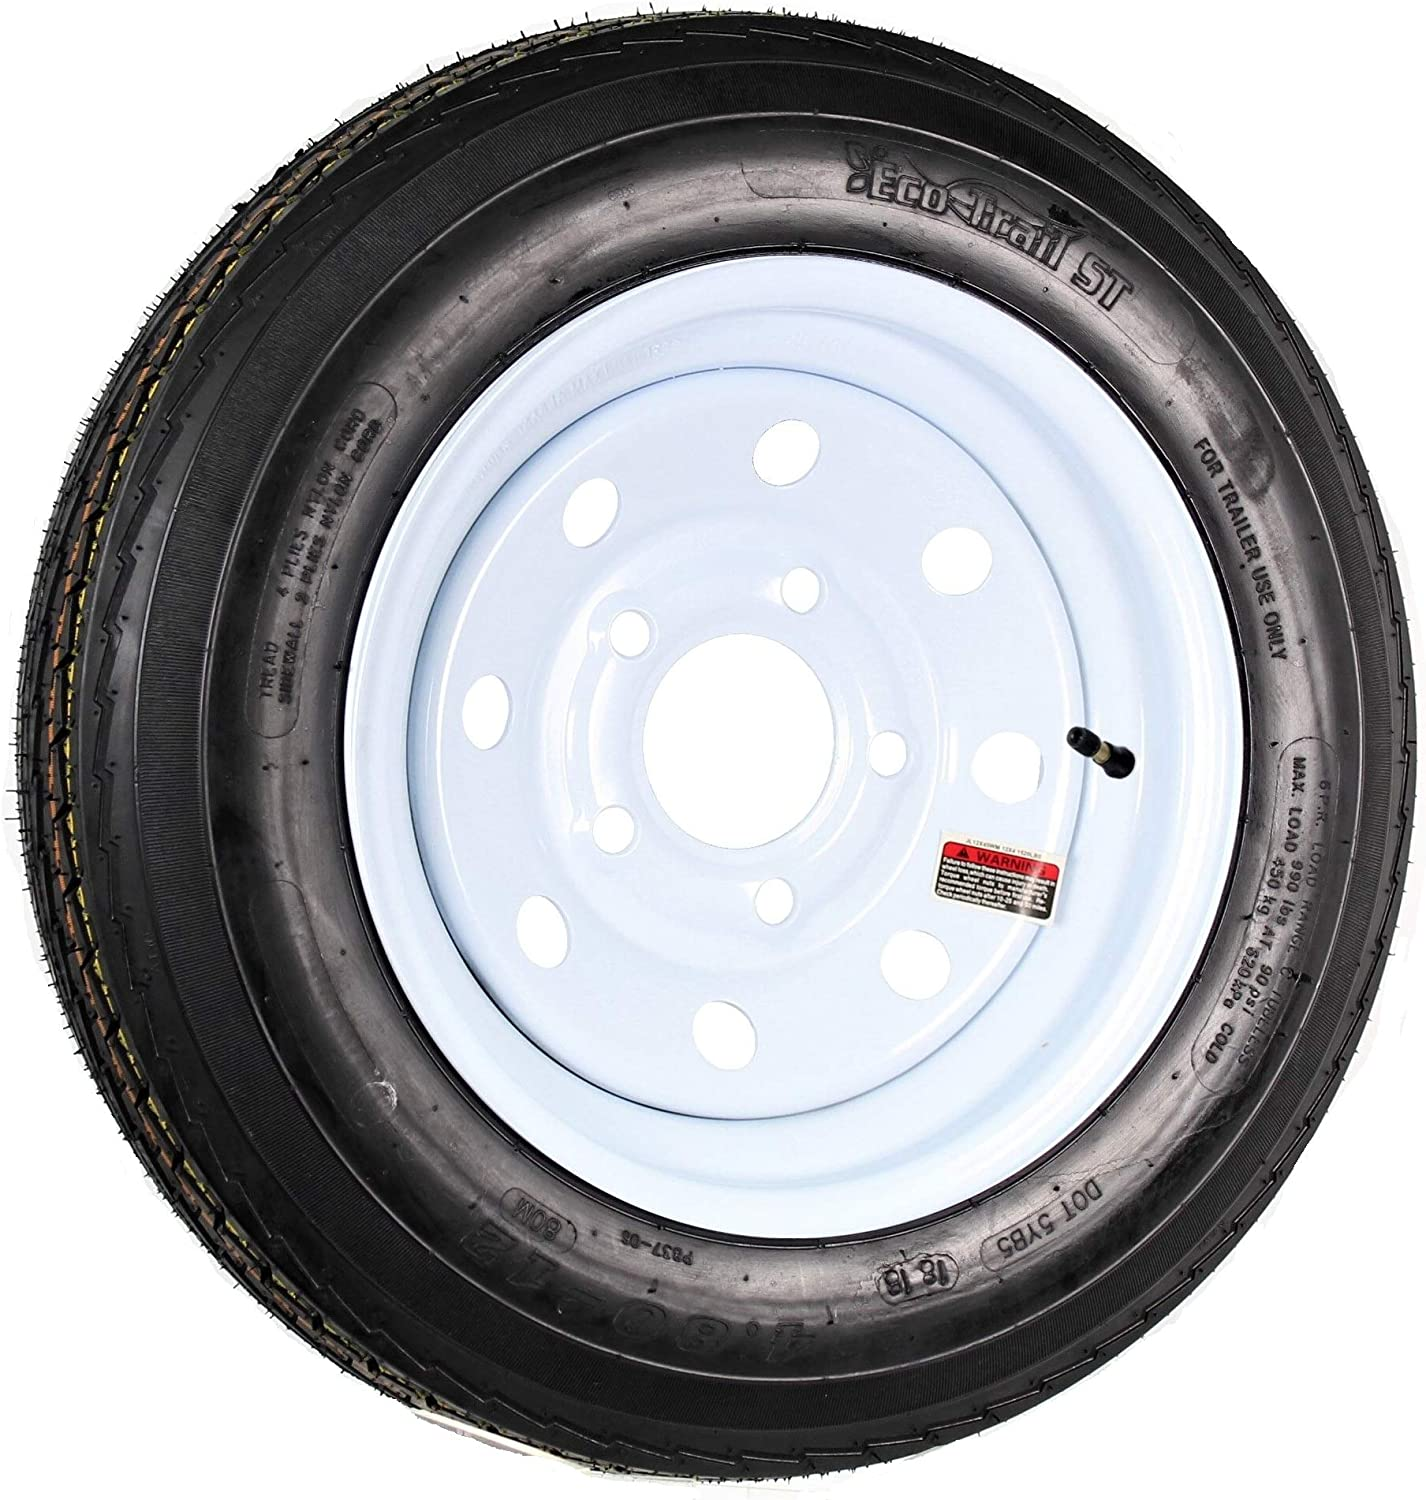 Kenda Trailer Tire//Wheel Assembly 6-Ply Rated//Load Range C 5 Hole Rim 30660 by Kenda 4.80-12